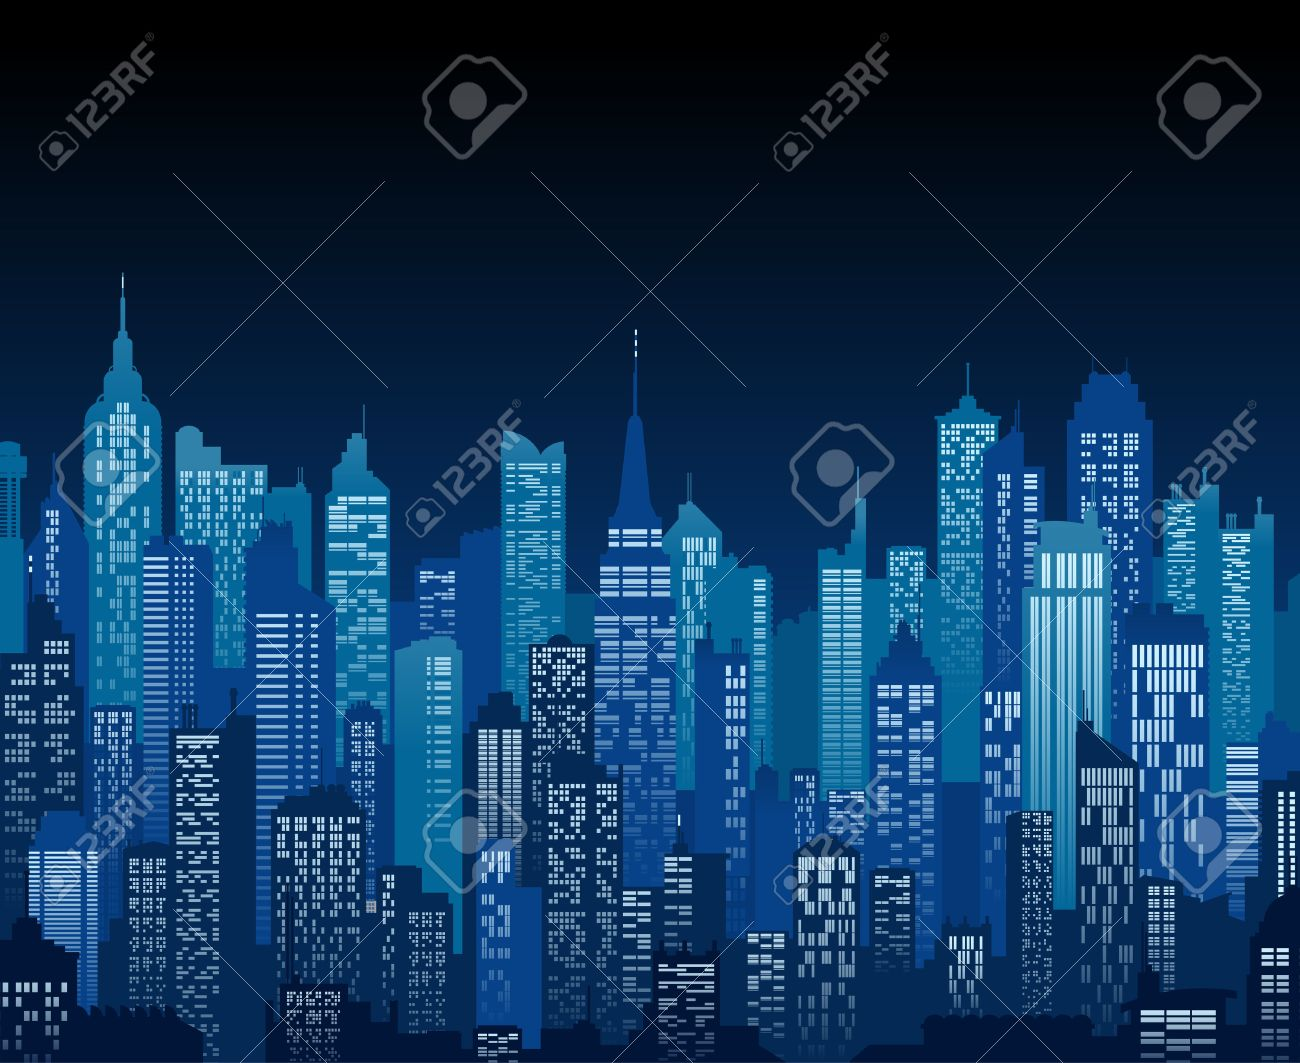 Blue high detail background of a city night view composed of lots of illustrations of generic buildings and skyscrapers - 61052841